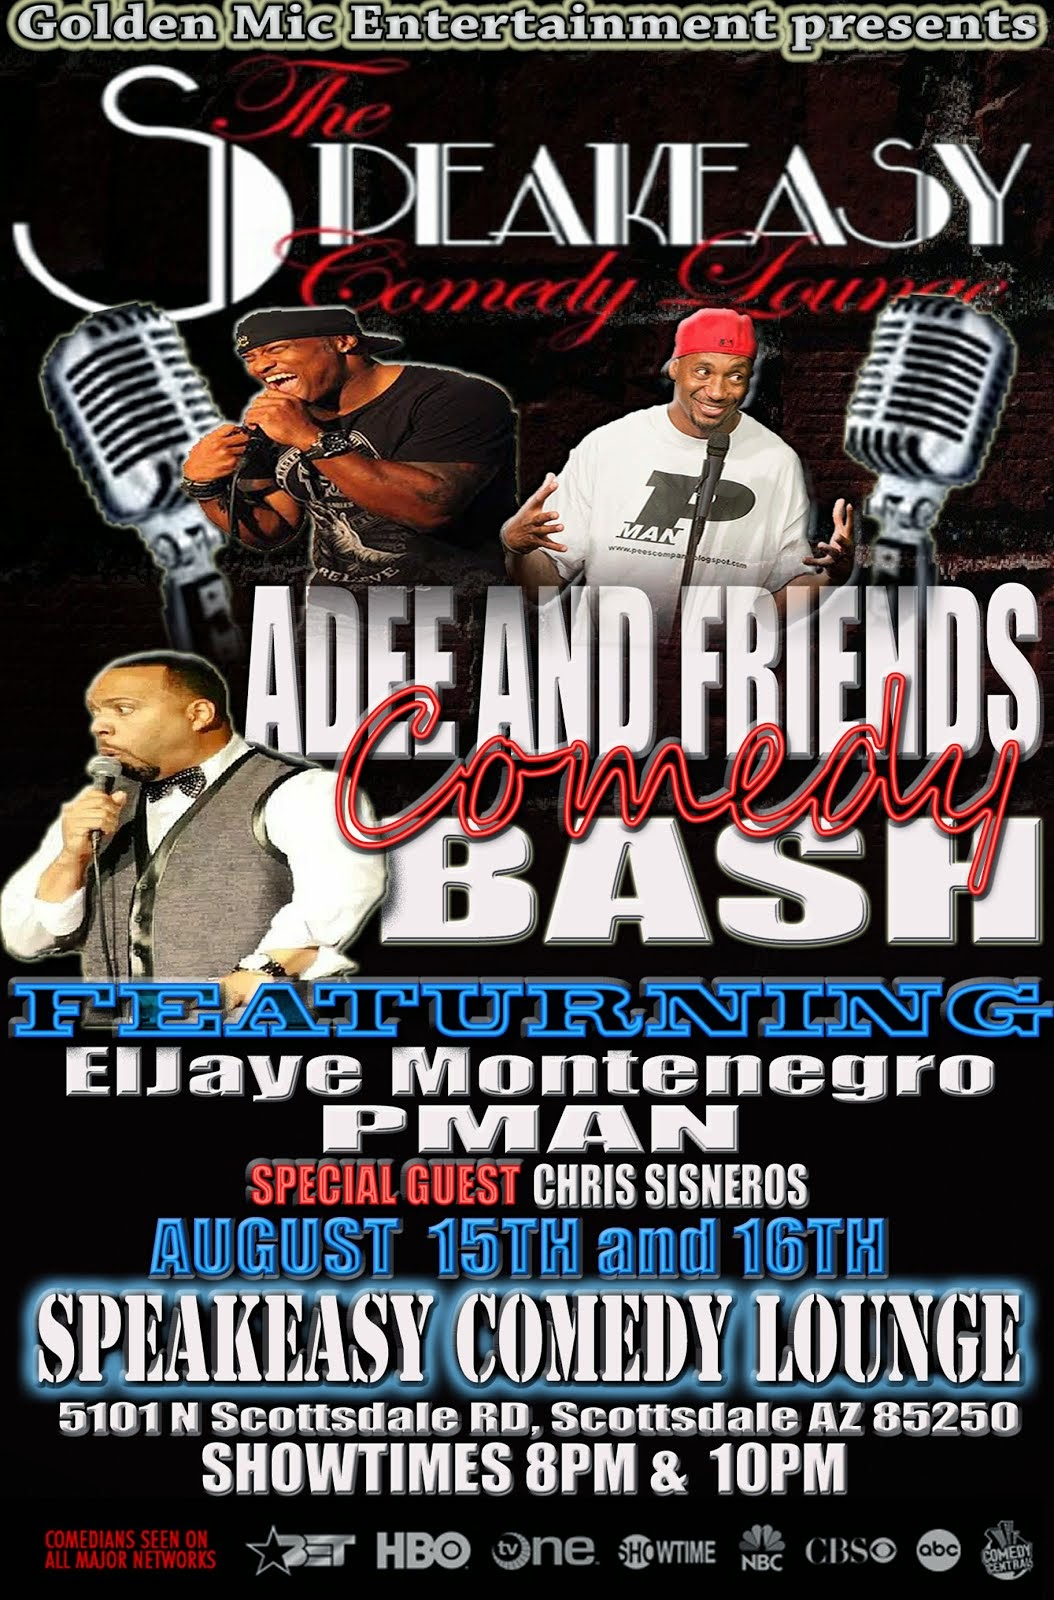 Adee's Arizona Comedy Show featuring Eljaye Montenegro and PMan